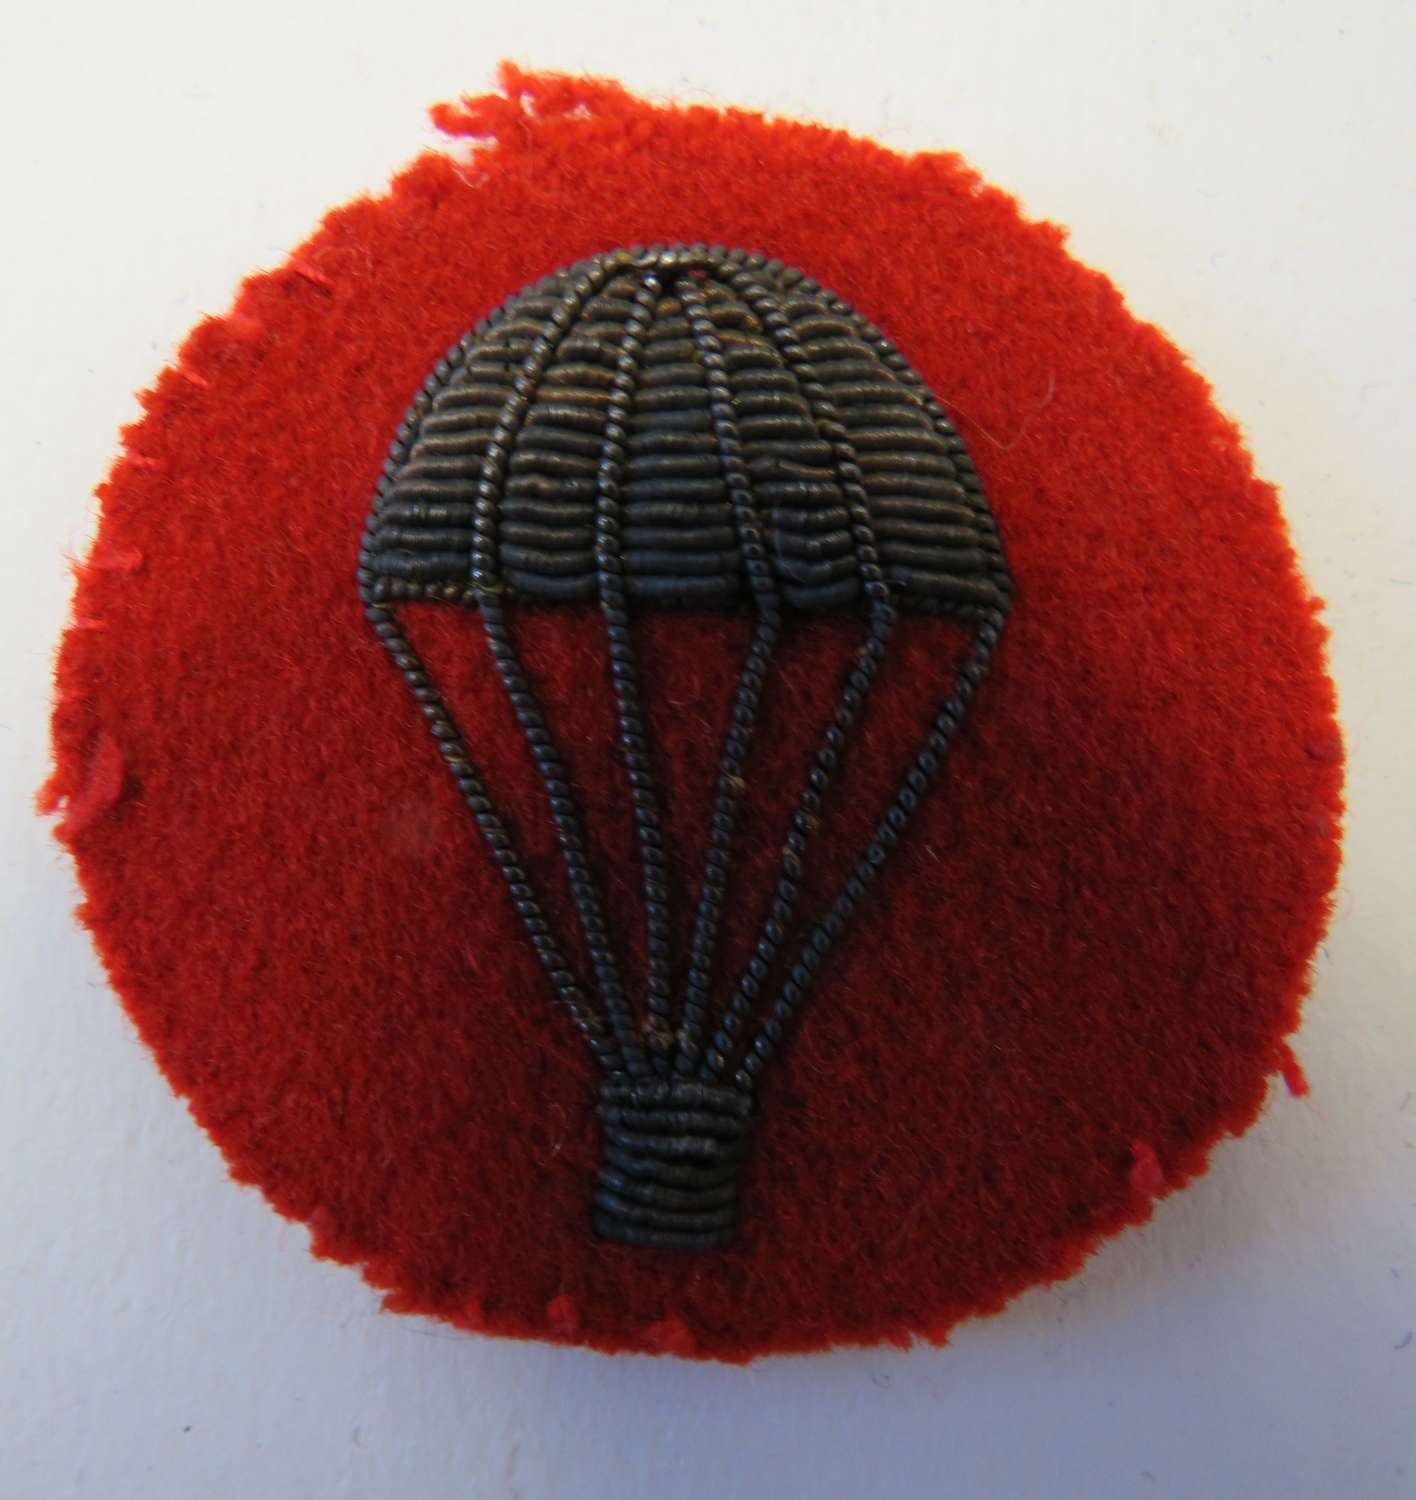 Airborne Mess Dress Qualification Badge